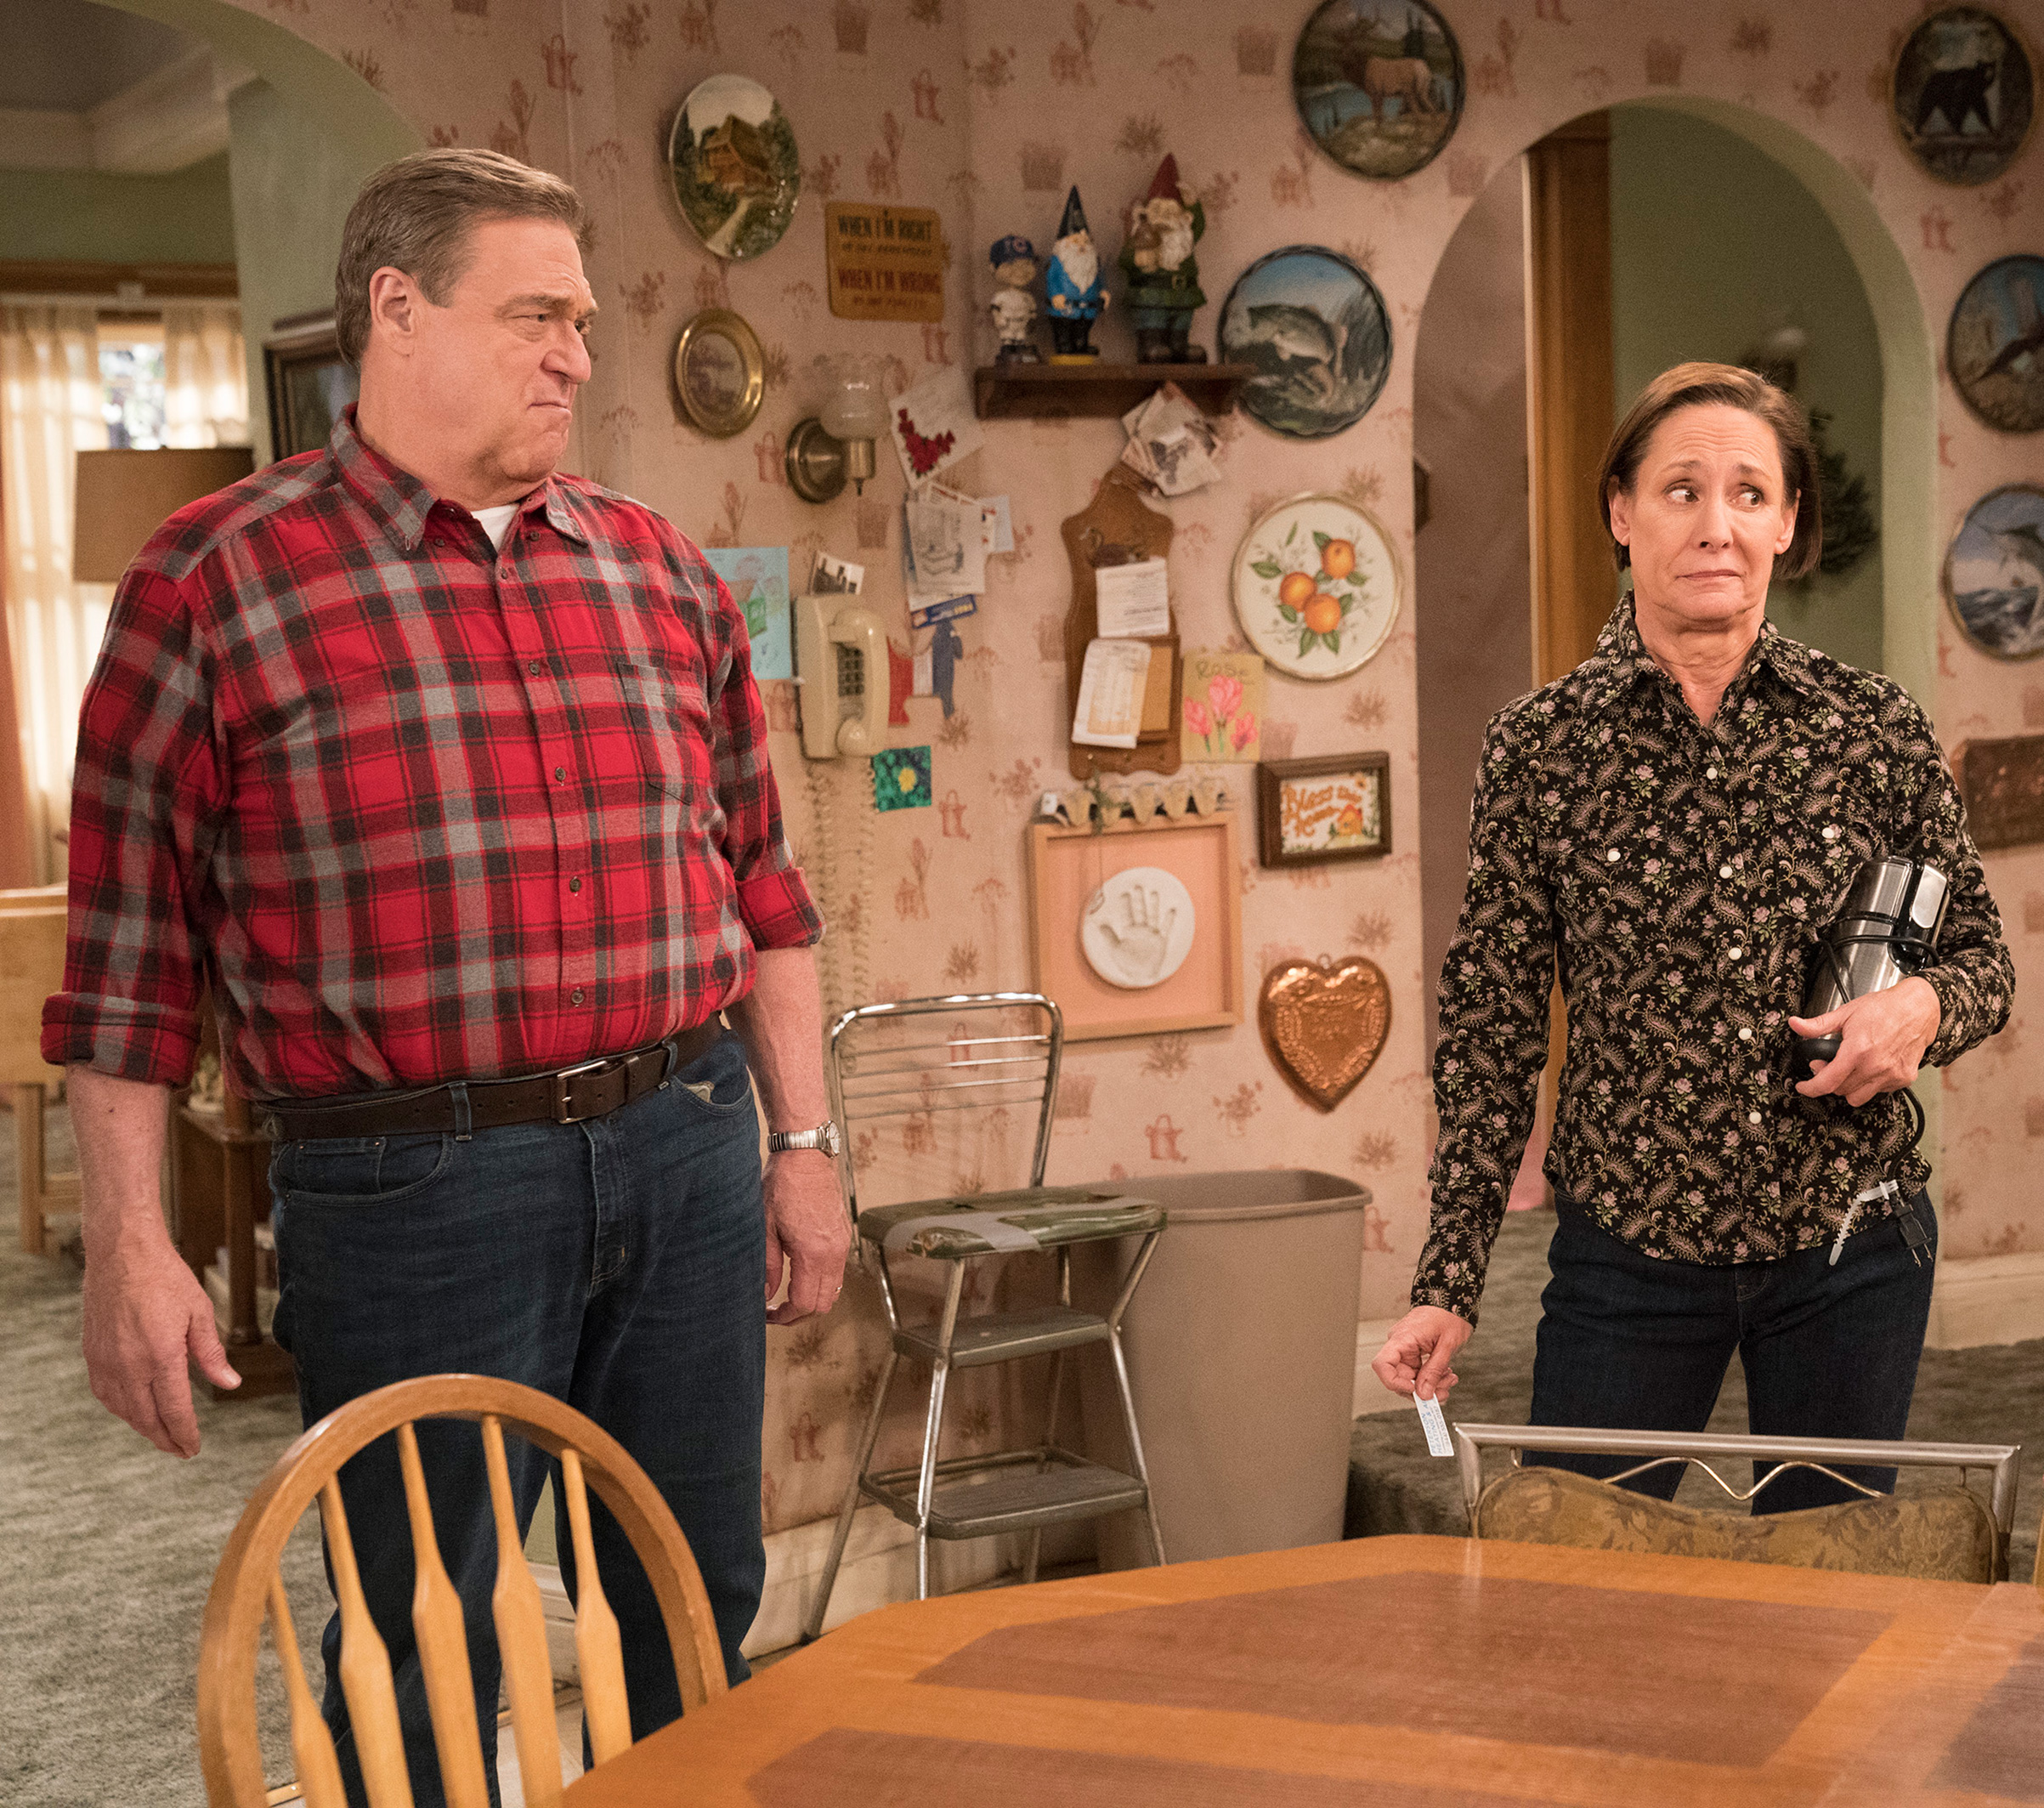 John Goodman (left) as Dan and Laurie Metcalf (right) as Jackie, in the episode  No Country for Old Women  of Roseanne will reprise their roles in The Conners this fall.